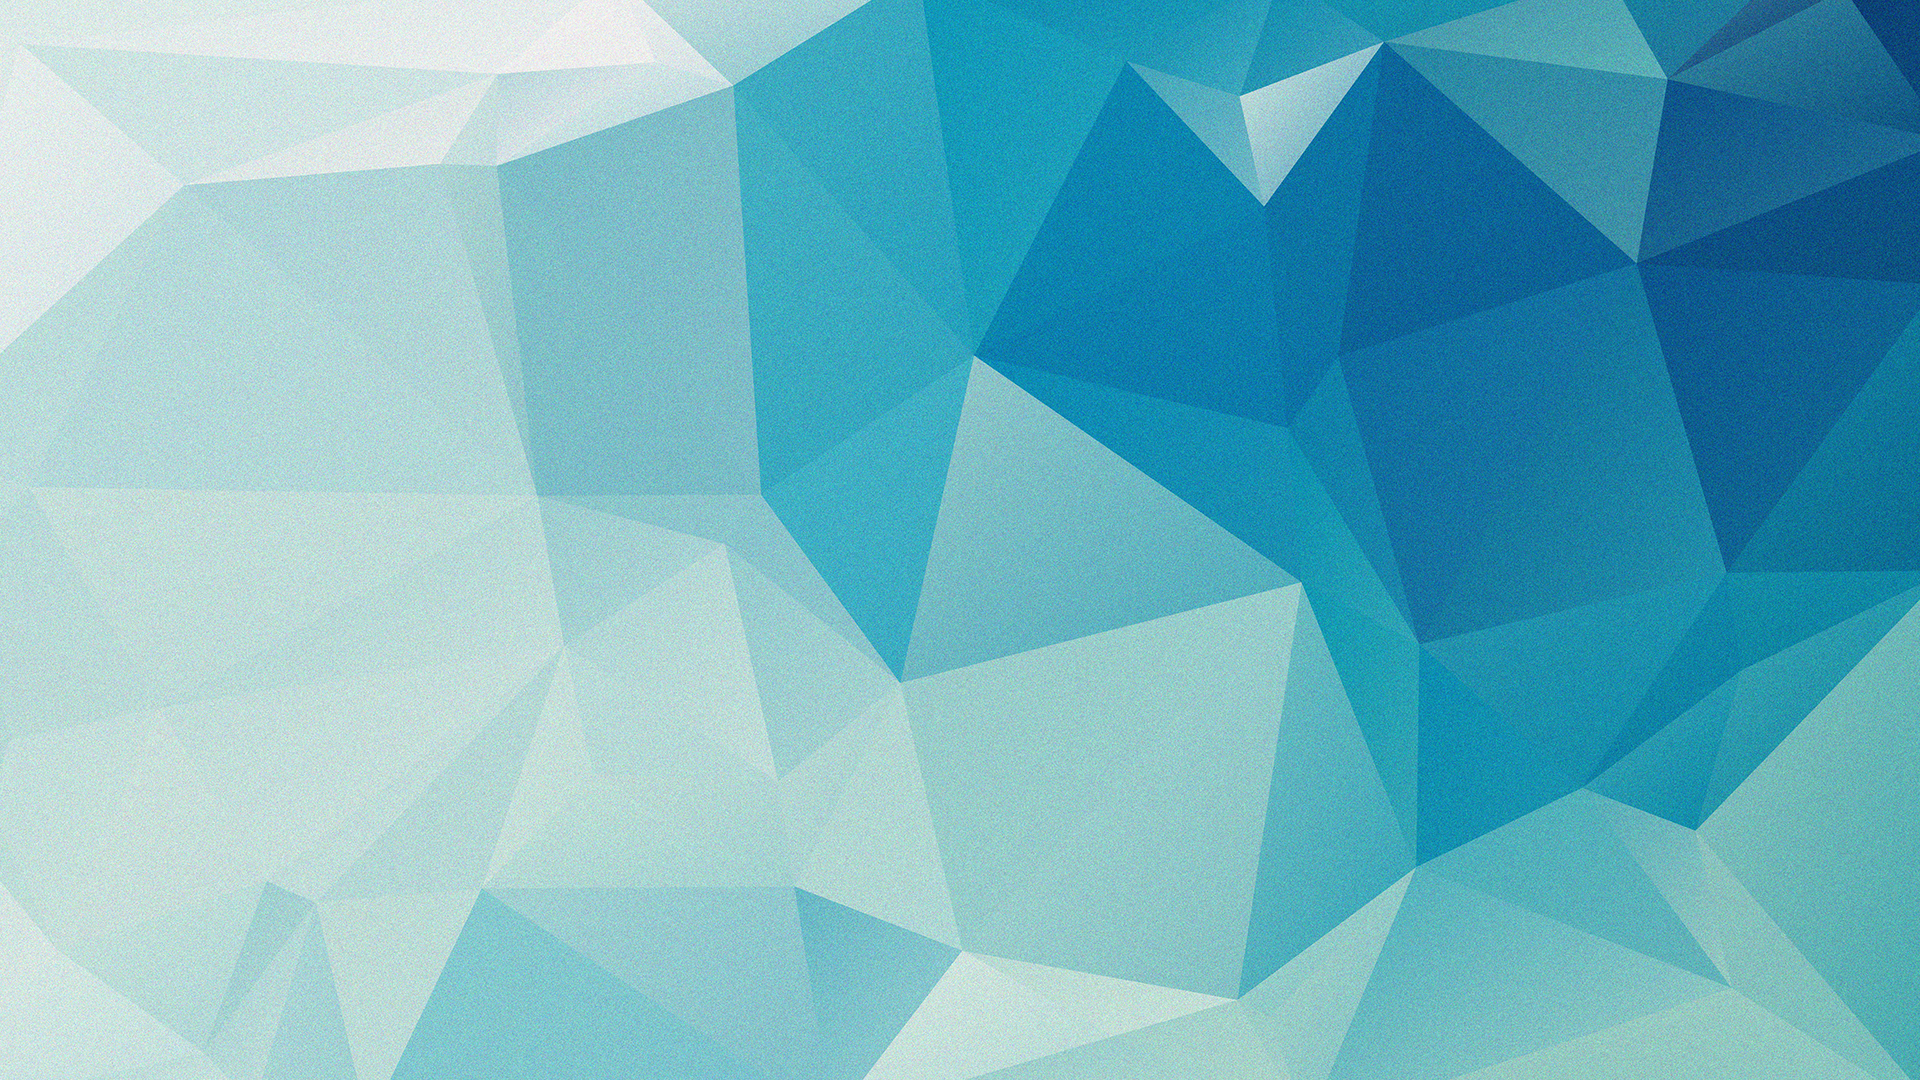 top polygon wallpaper abstract - photo #13